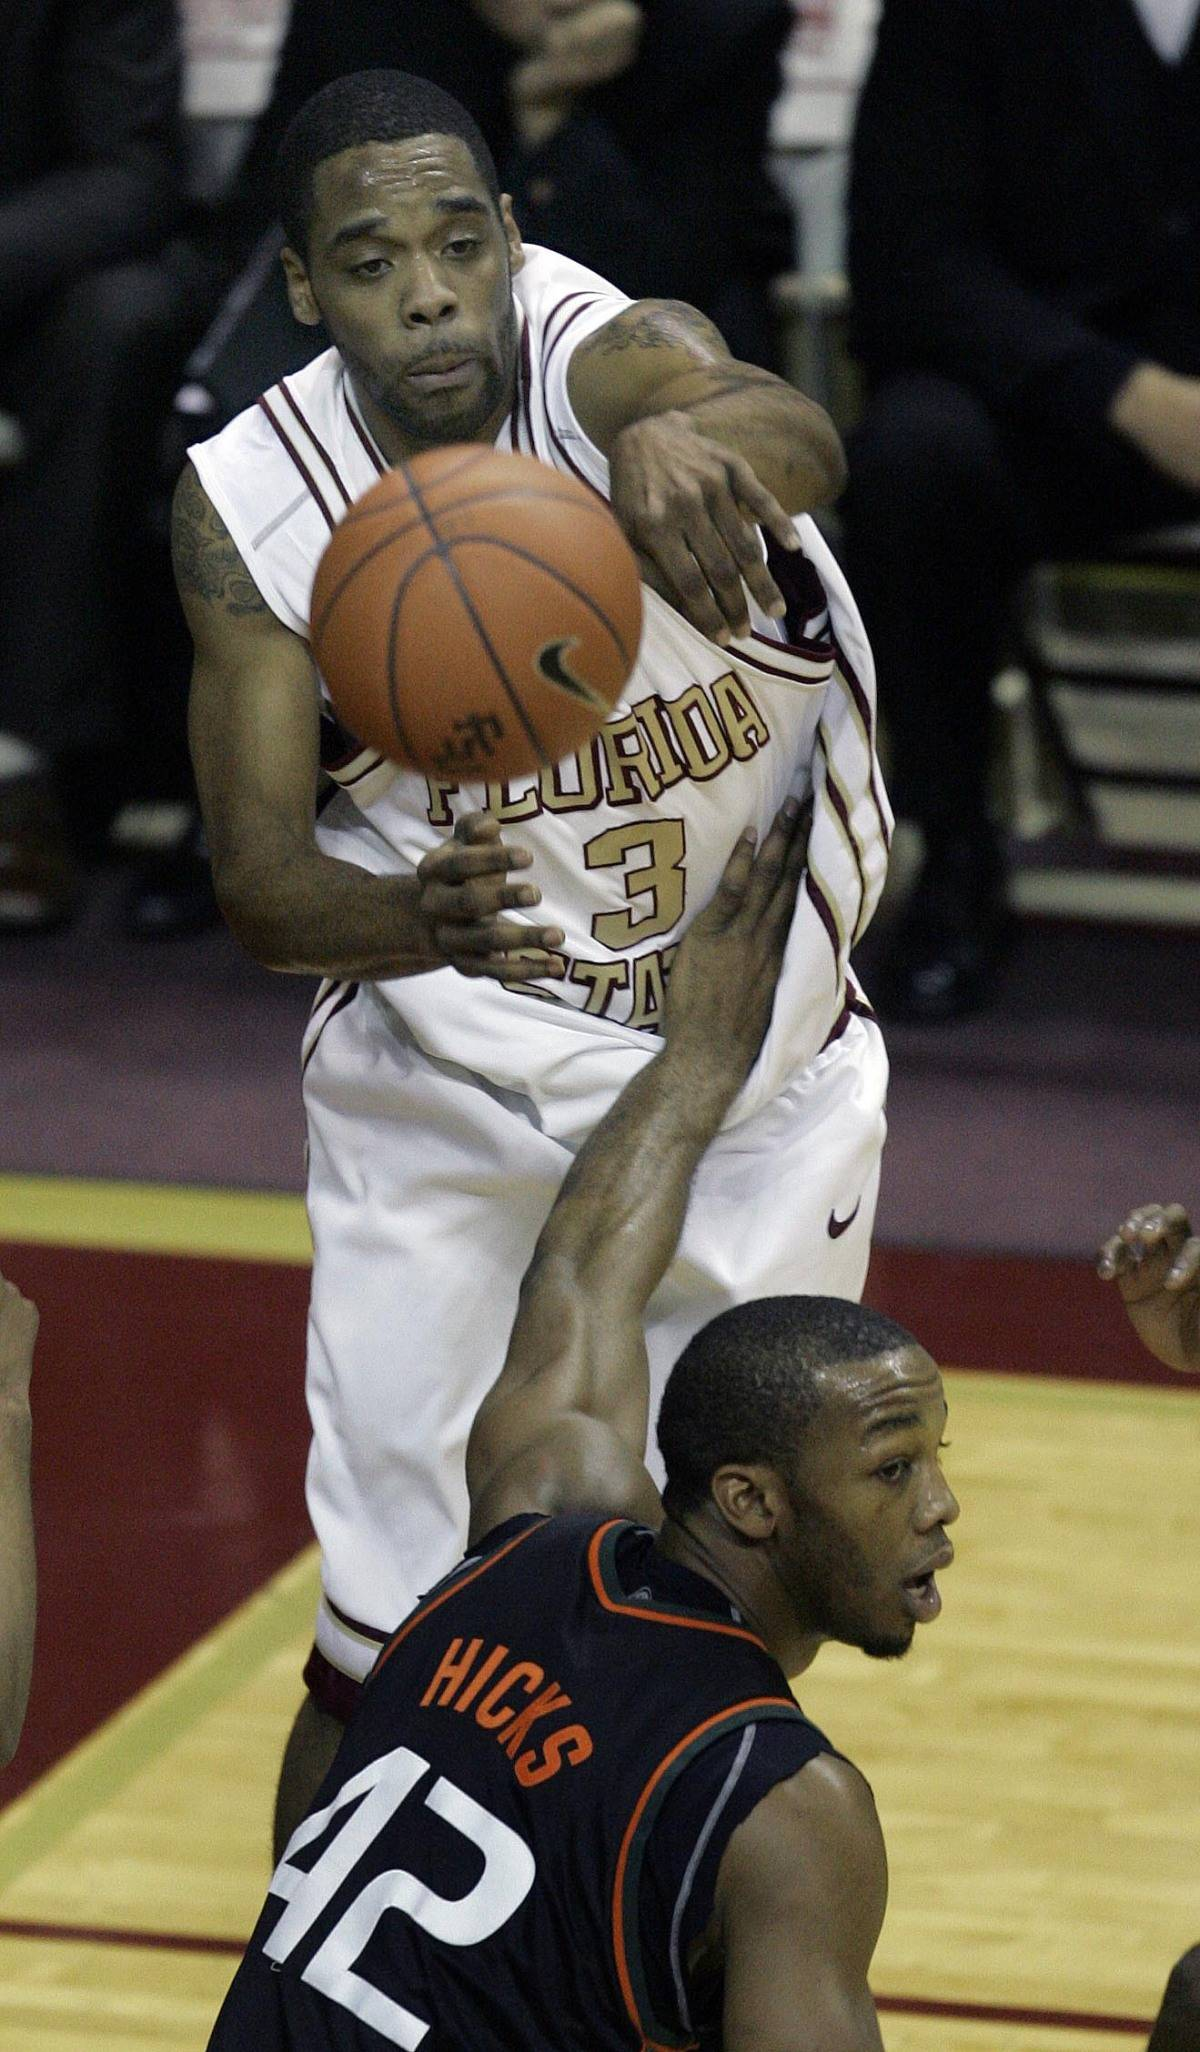 Florida State's Isaiah Swann, top, goes over Miami's Raymond Hicks to make a first-half pass during a college basketball game, Saturday, Jan. 20, 2007, in Tallahassee, Fla. (AP Photo/Phil Coale)<br>